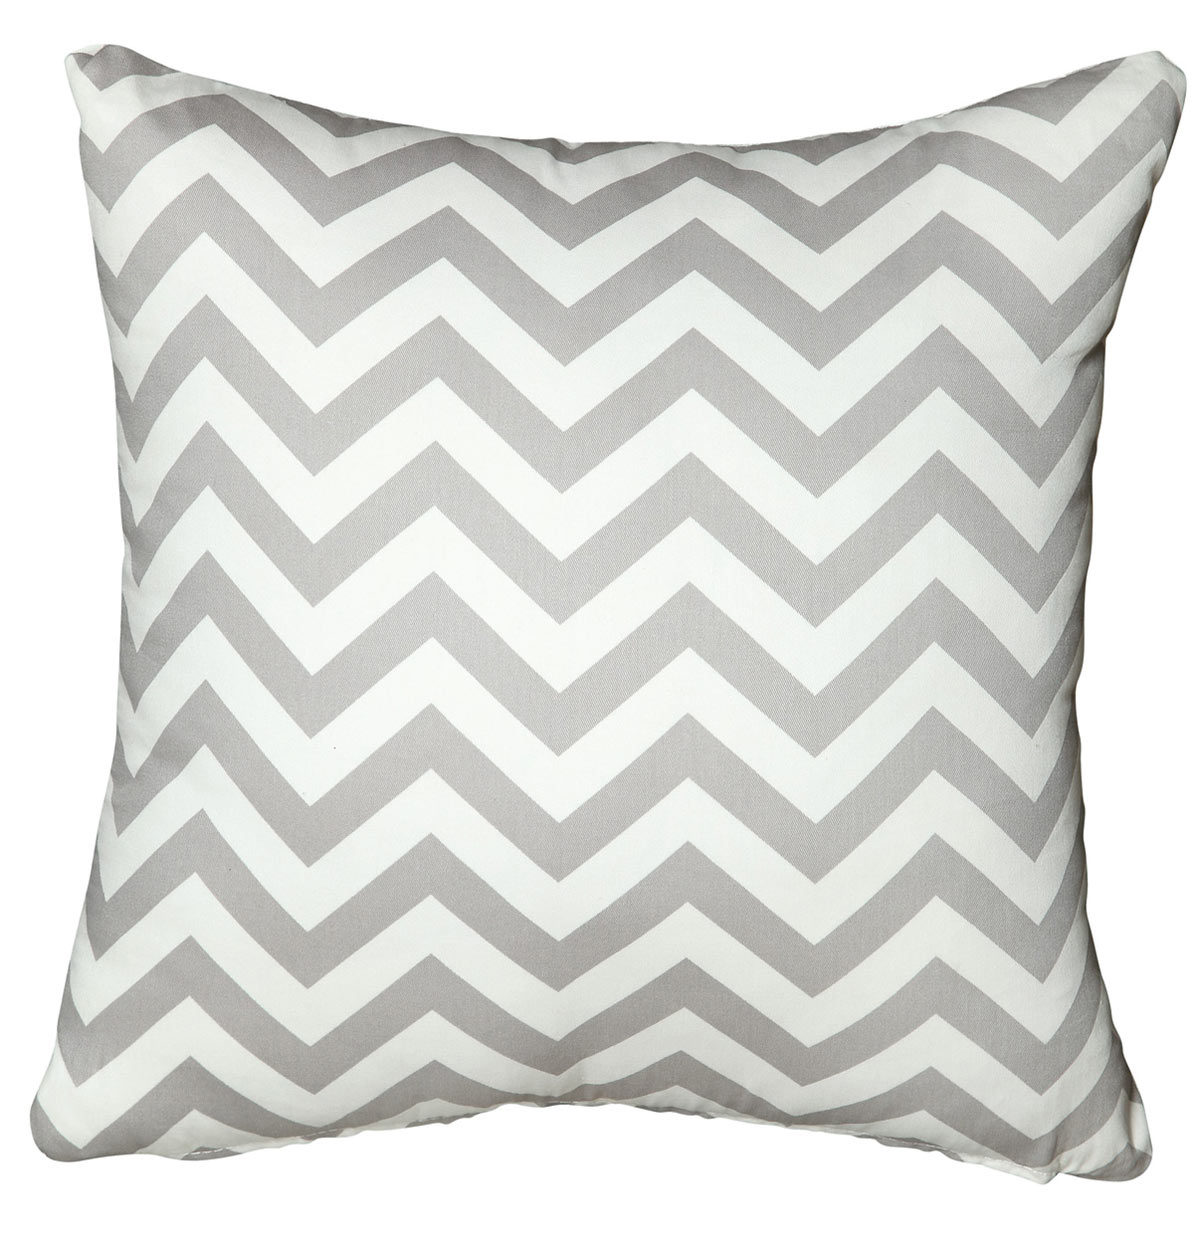 905095 Grey Chevron Pillow